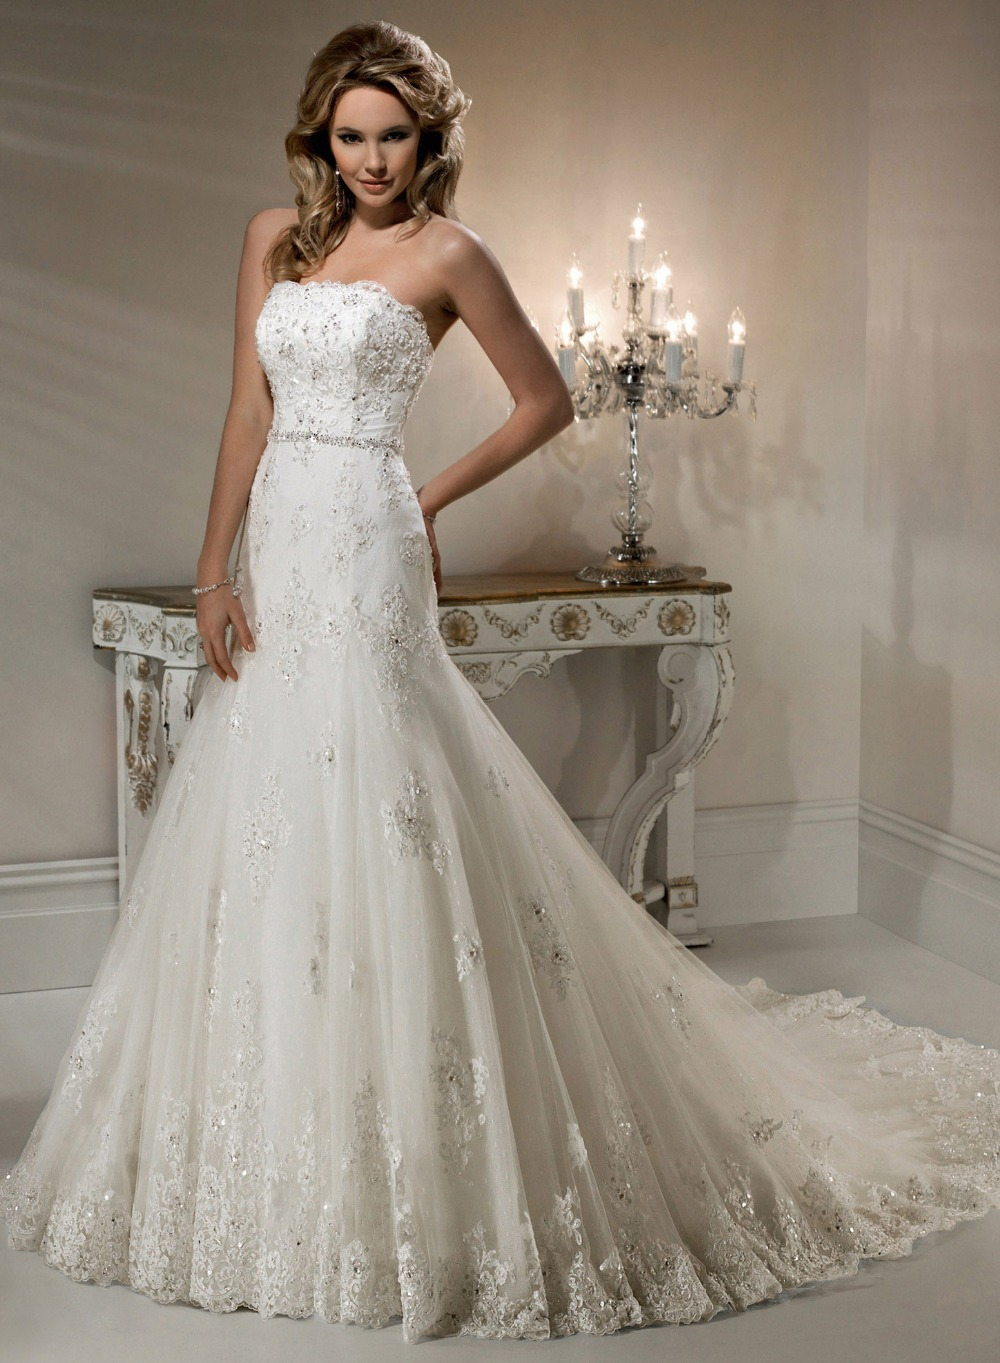 wedding dresses YW010 Hot Sale New Elegant Mermaid Bridal Gowns Beaded Strapless Appliqued Lace